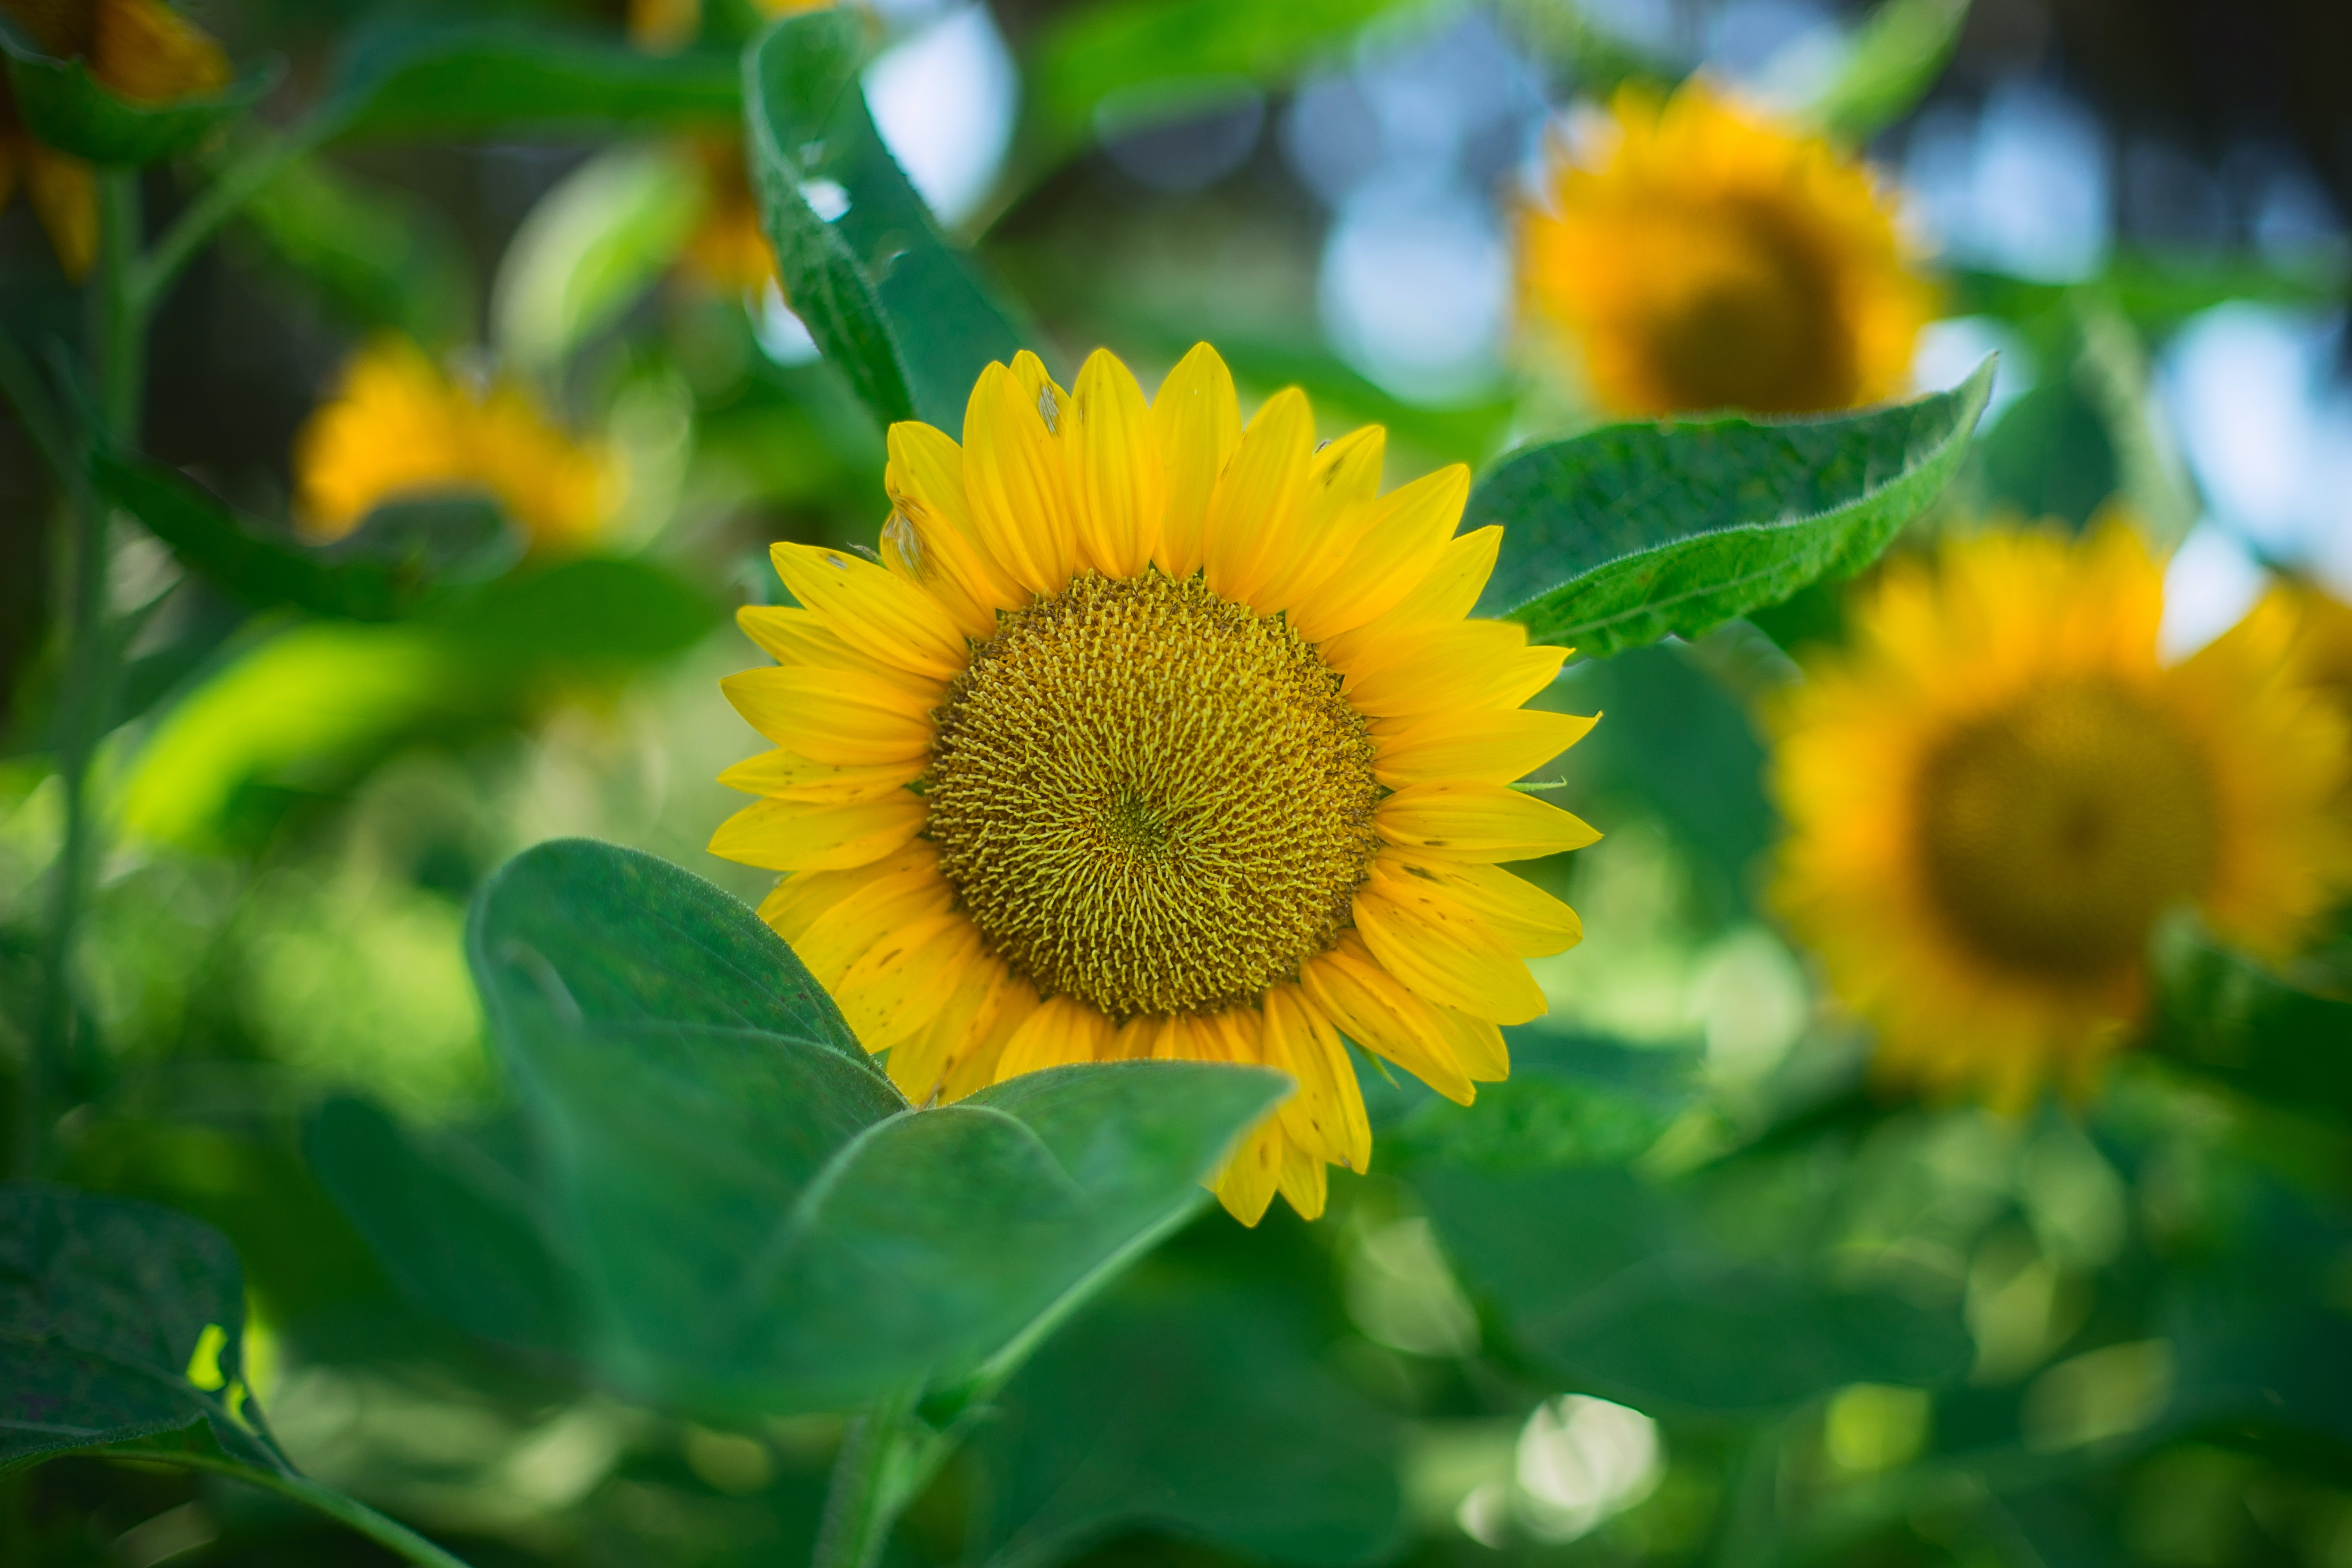 A patch of yellow sunflowers on a sunny day